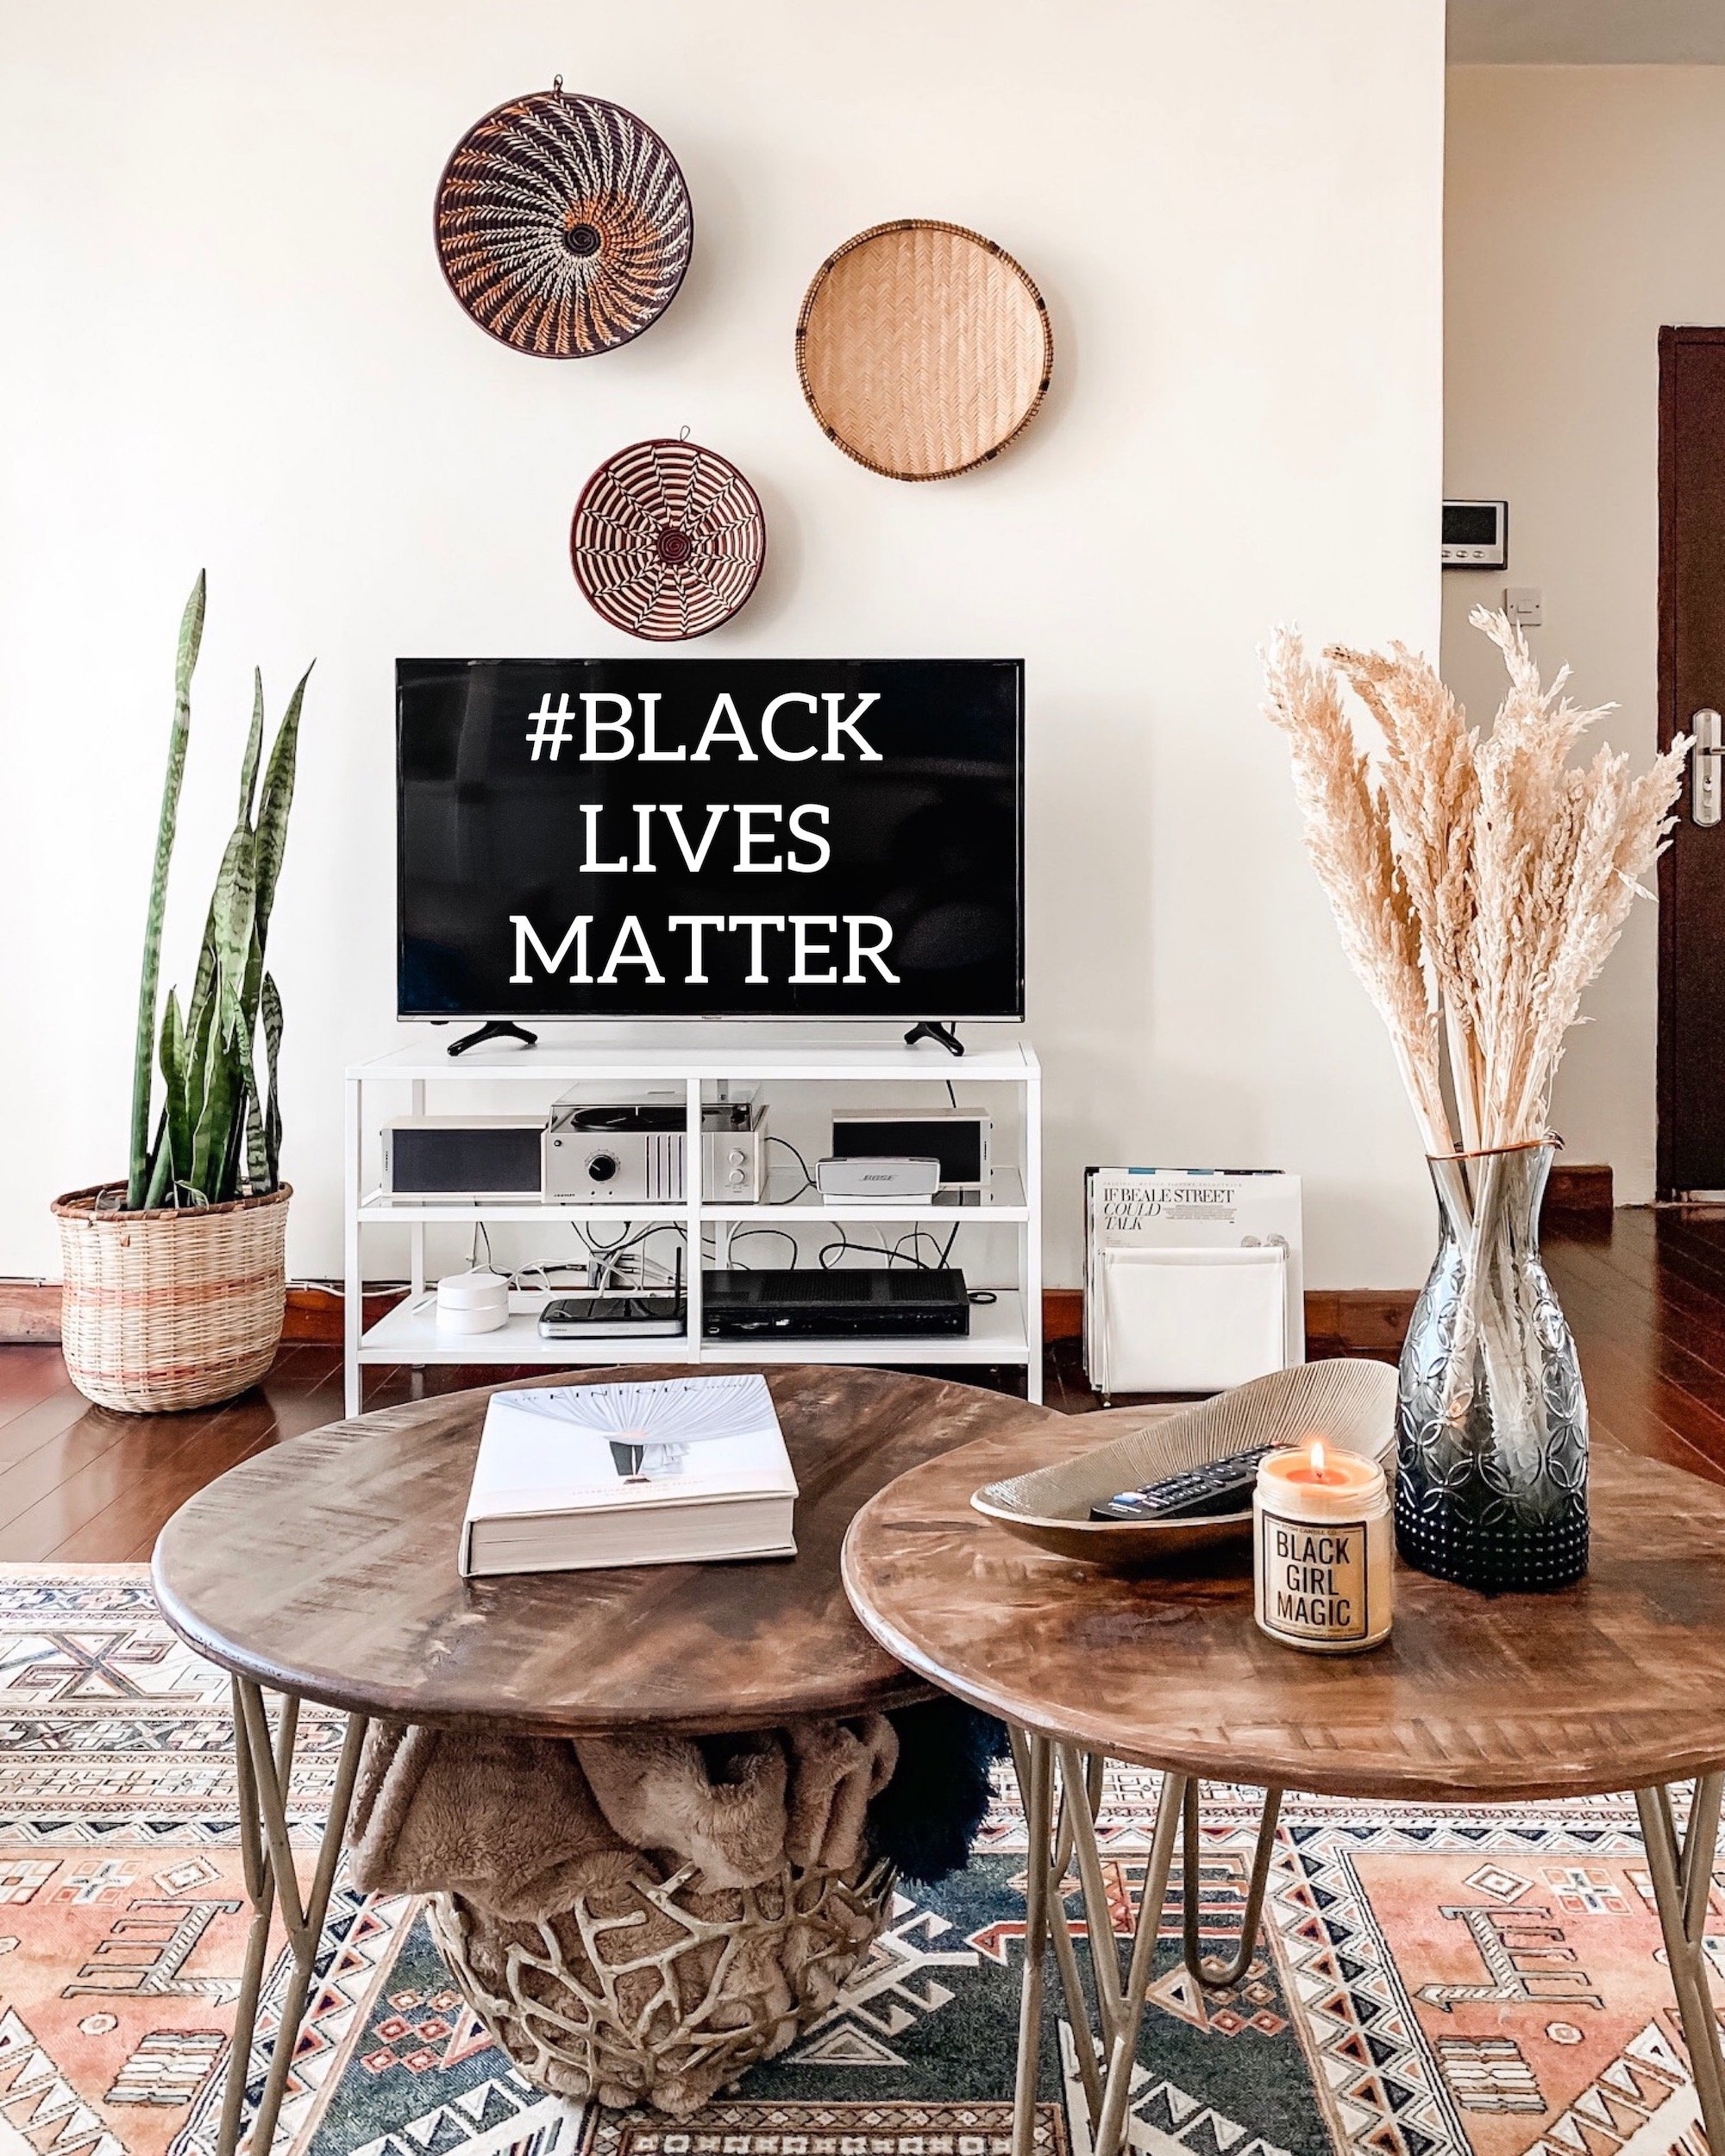 Living room set up with African inspired home decor and Black Lives Matter on TV screen